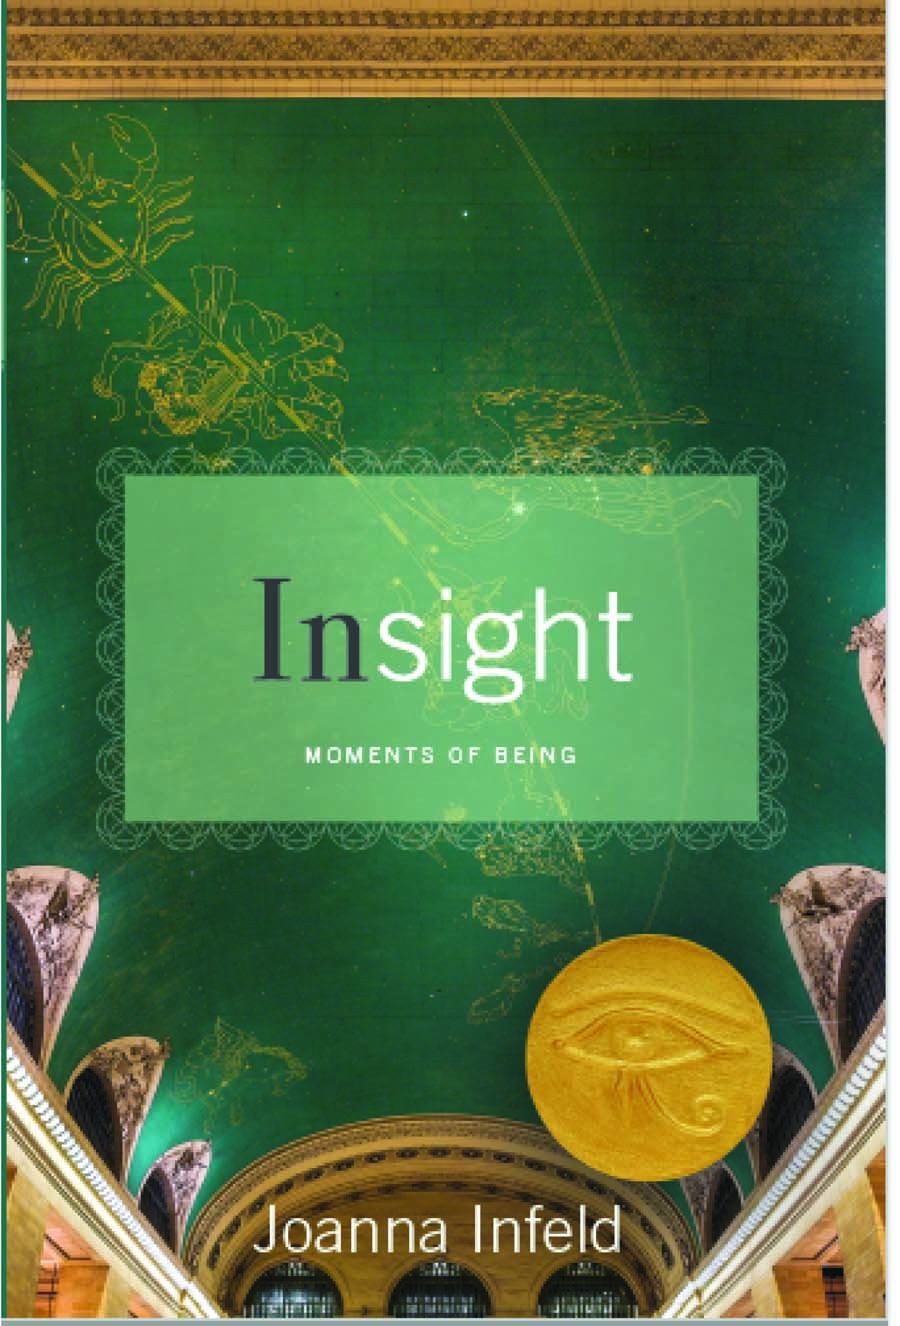 Insight, Moments of Being by Joanna Infeld